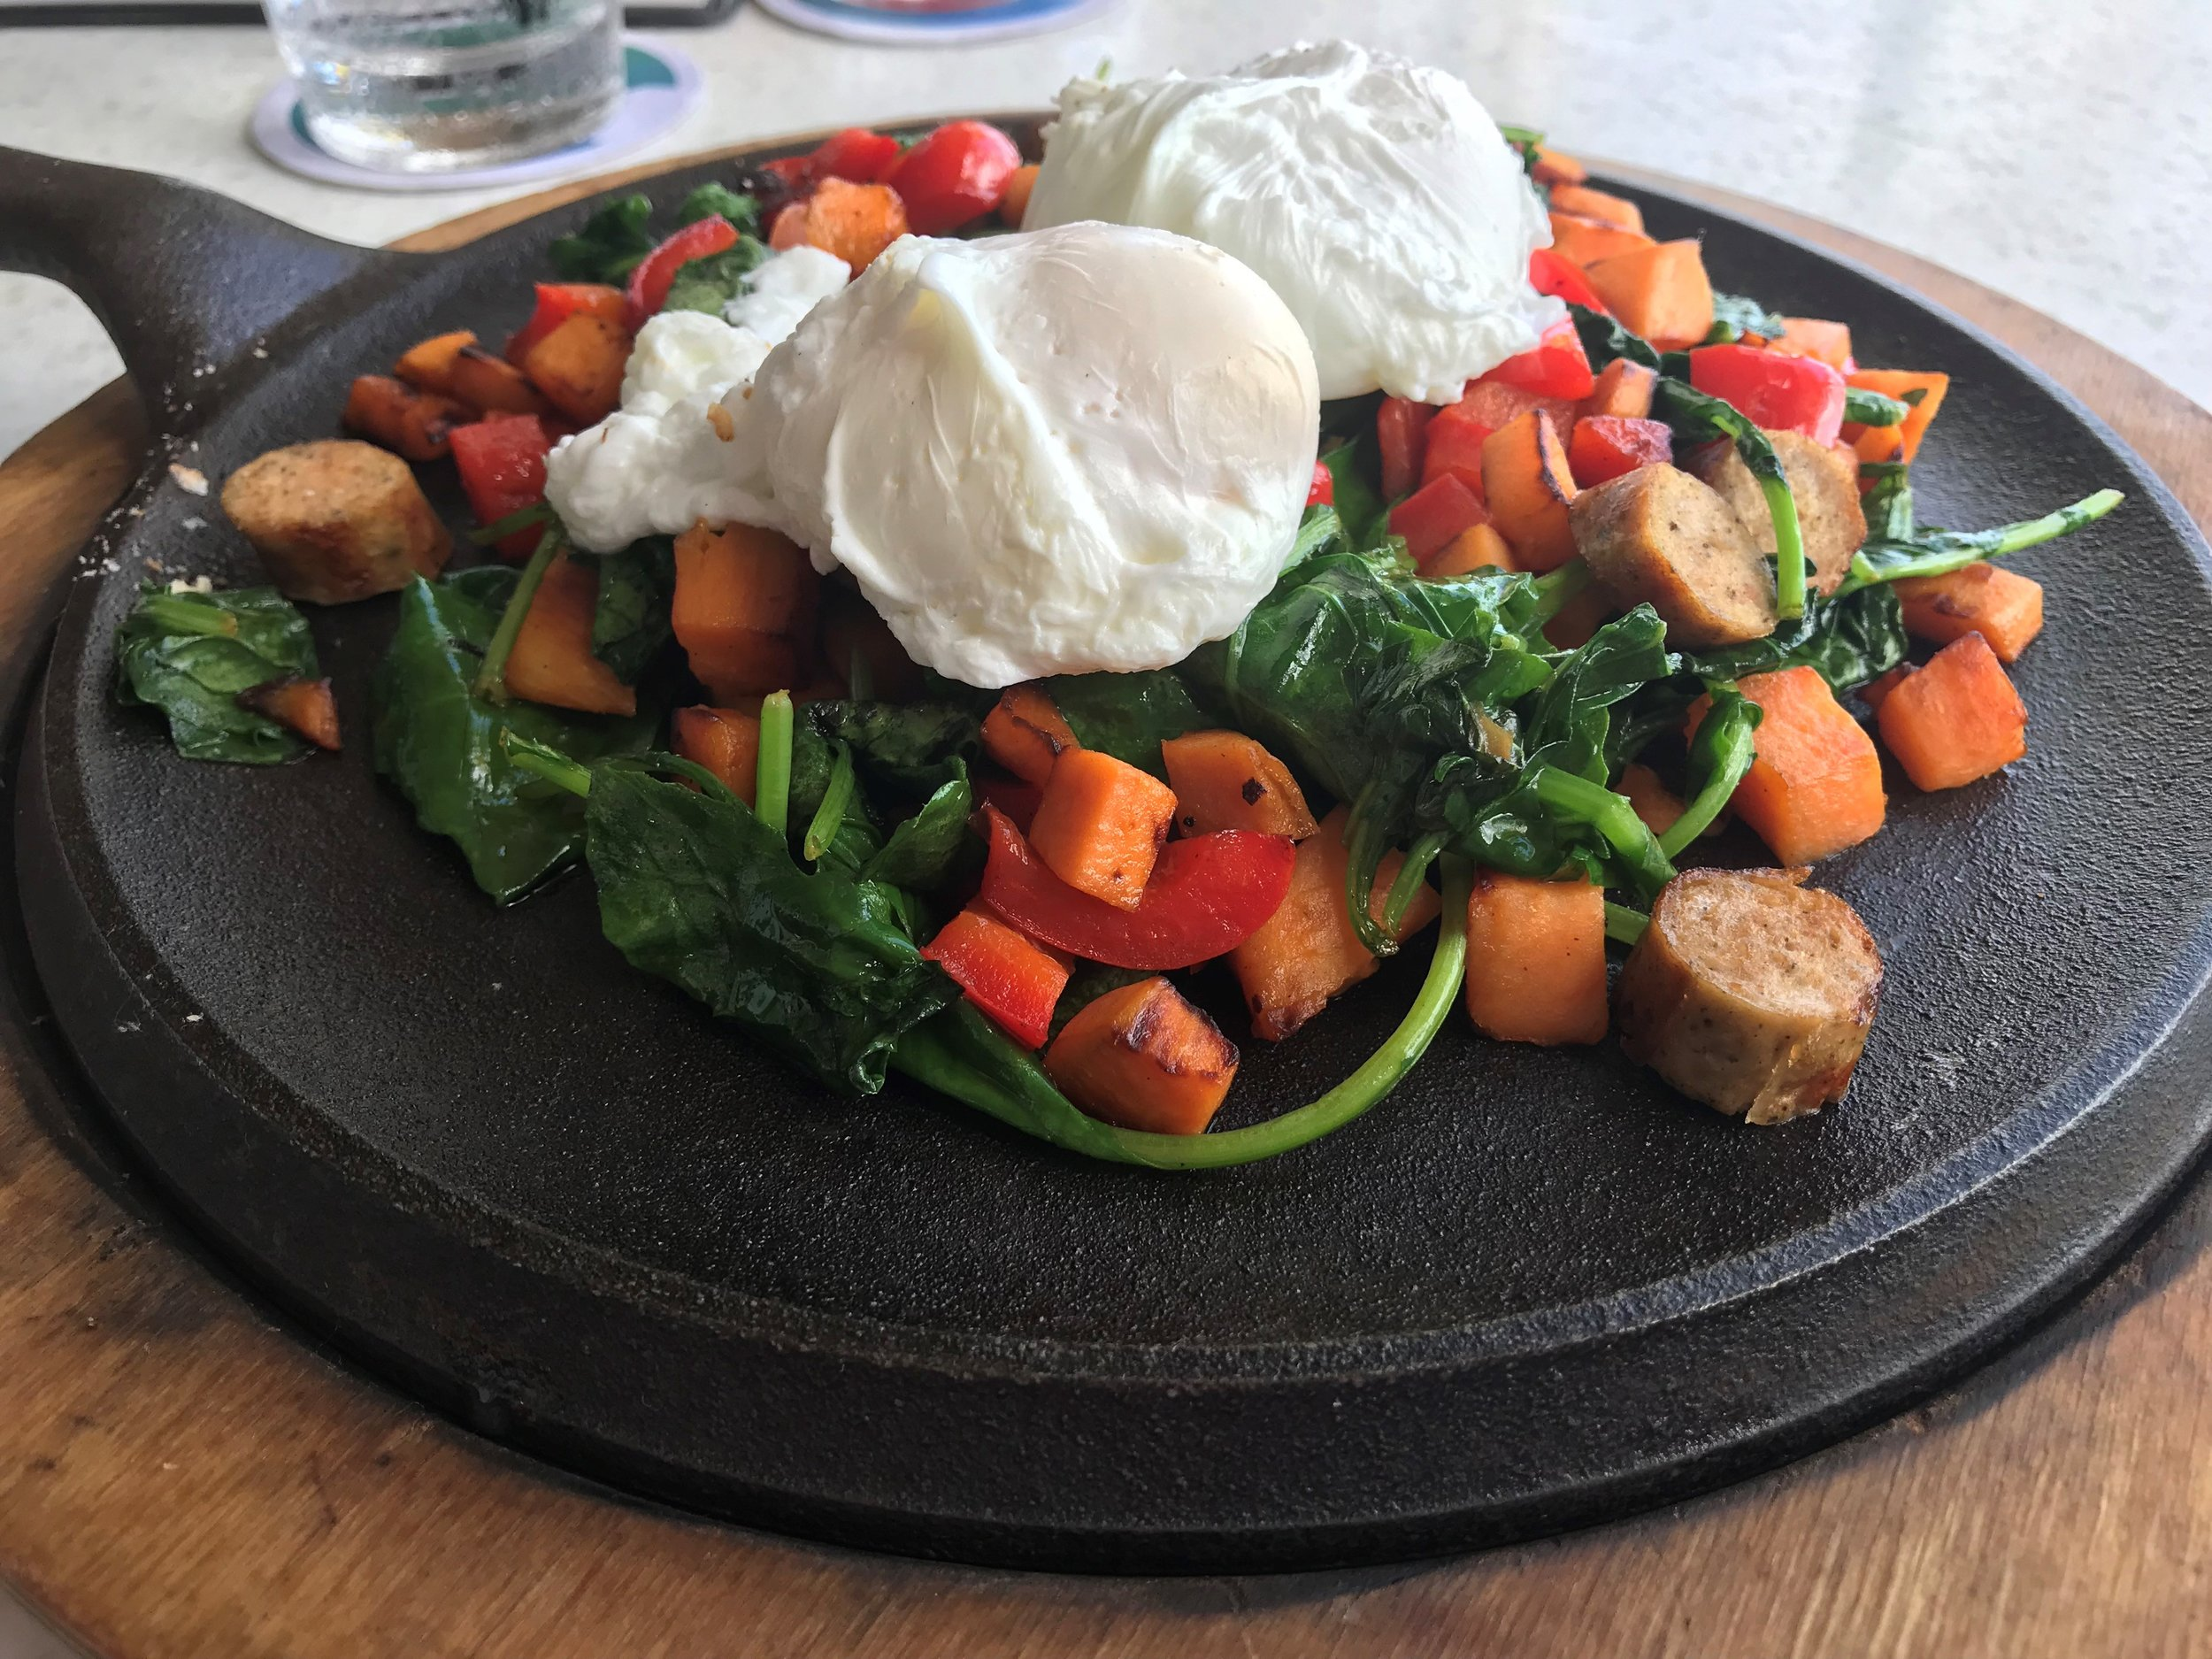 Oceans 234 Deerfield Beach sweet potato hash